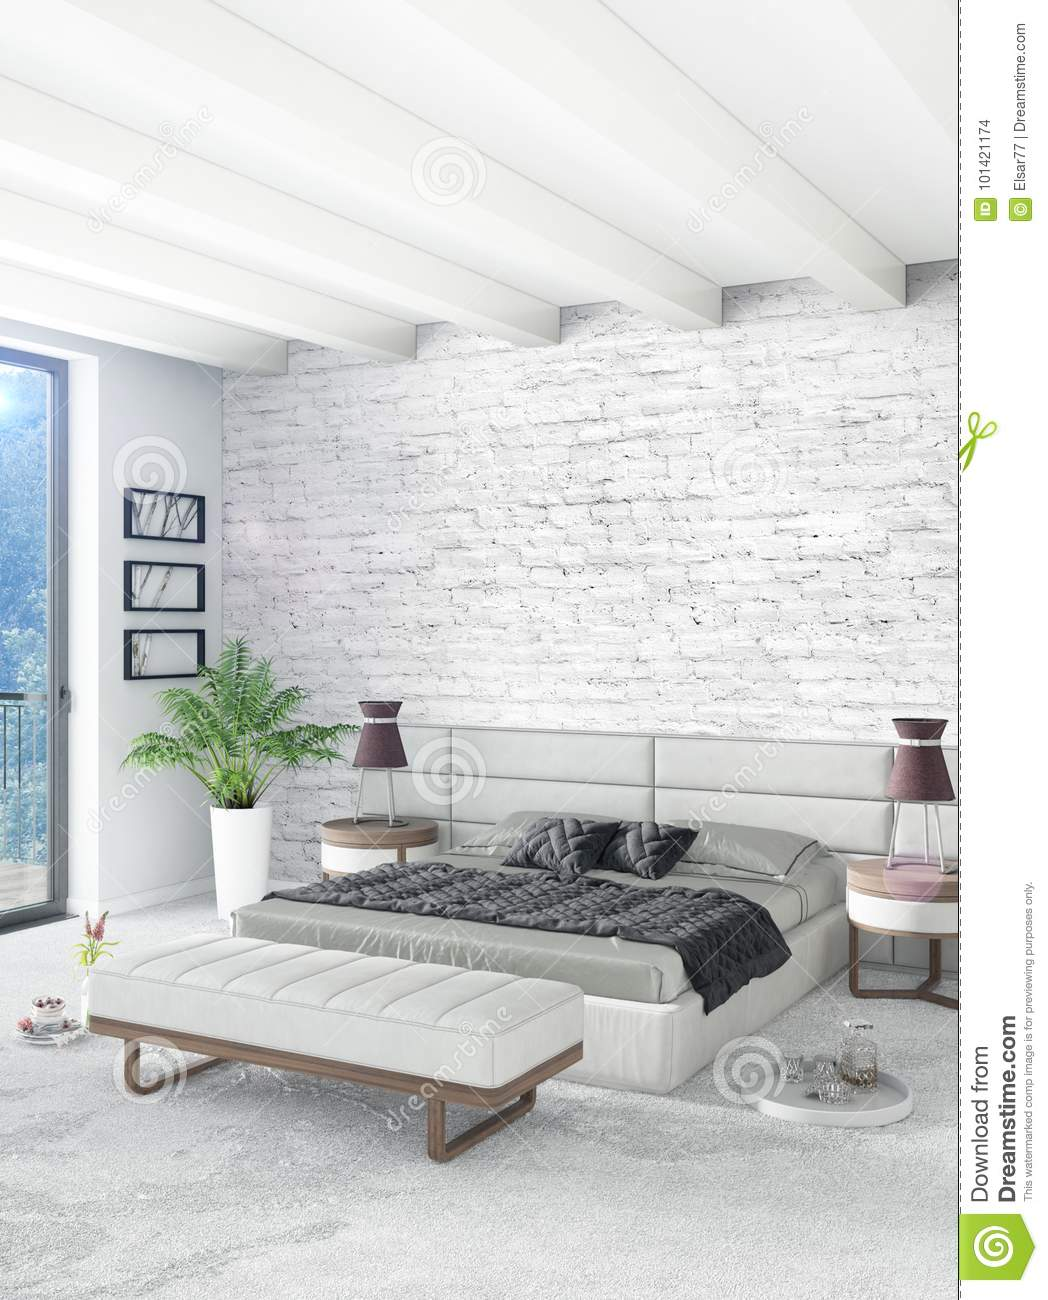 Loft Bedroom In Modern Style Interior Design With Eclectic Wall And Stylish Sofa 3d Rendering Stock Illustration Illustration Of Living Empty 101421174